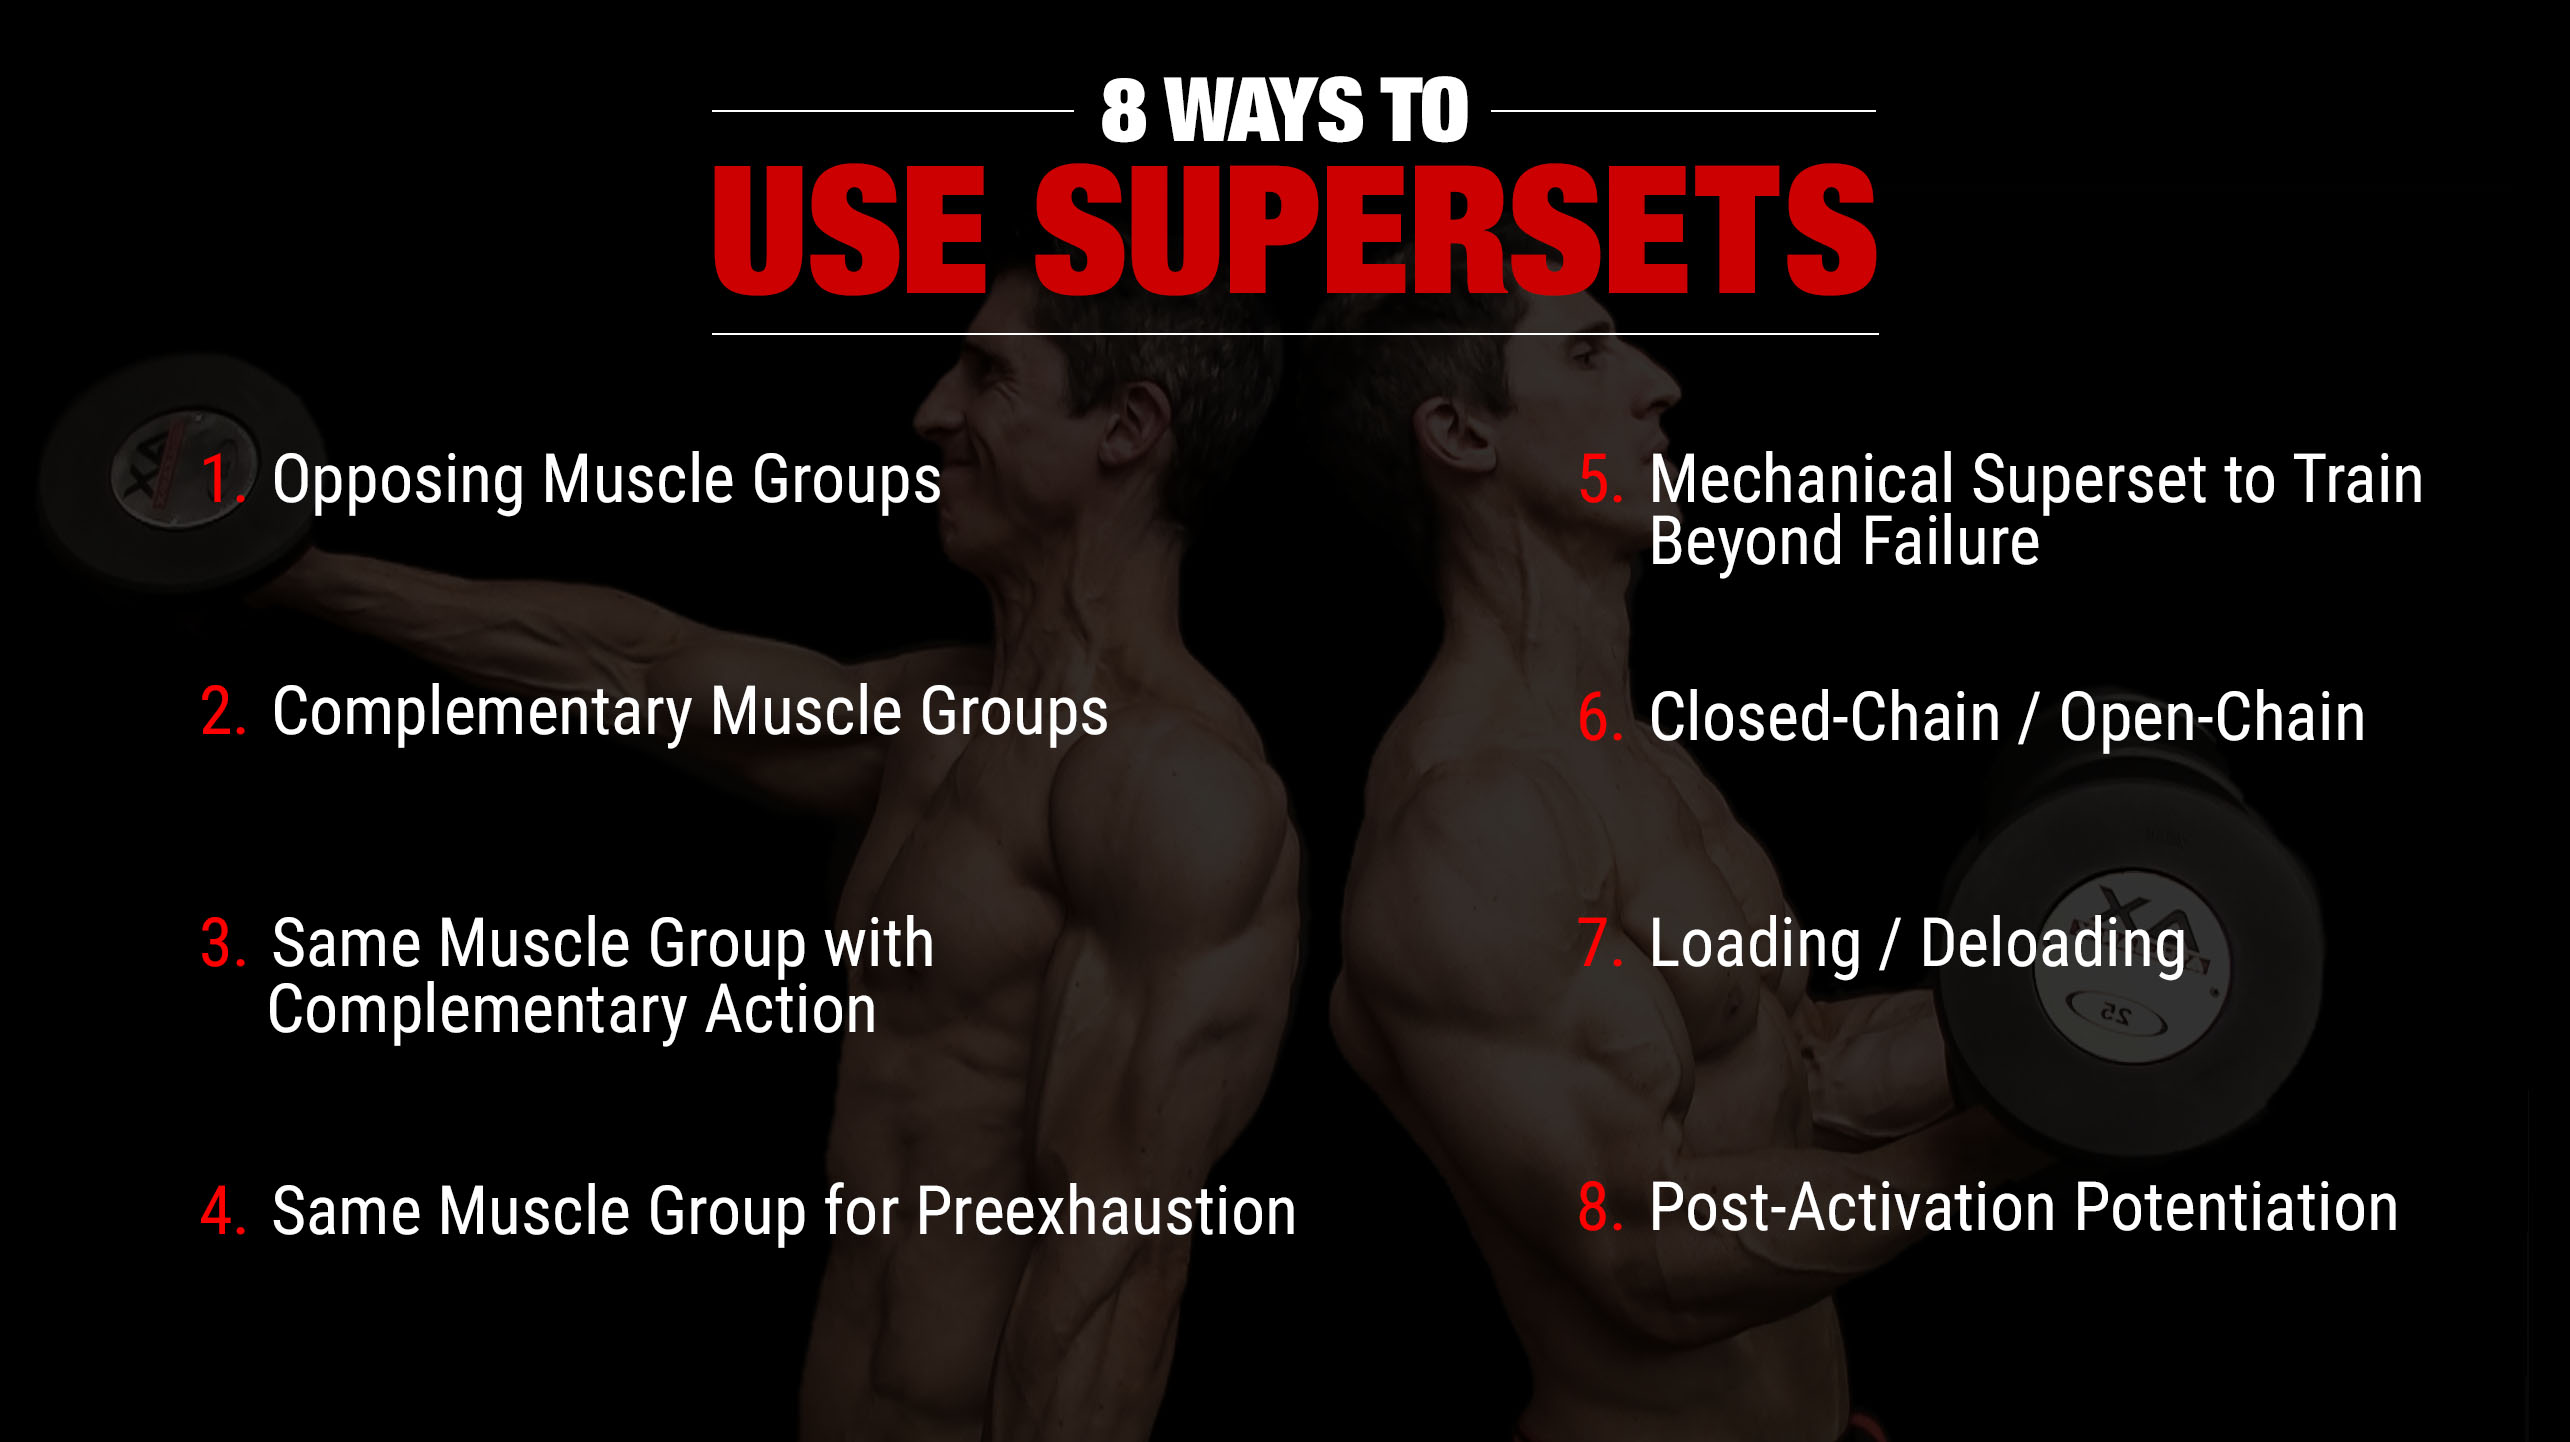 8 ways to use supersets: opposing muscle groups, complementary muscle groups, same muscle group with complementary action, same muscle group for pre-exhaustion, mechanical superset to train beyond failure, closed-chain / open-chain, loading / deloading, post-activation potentiation